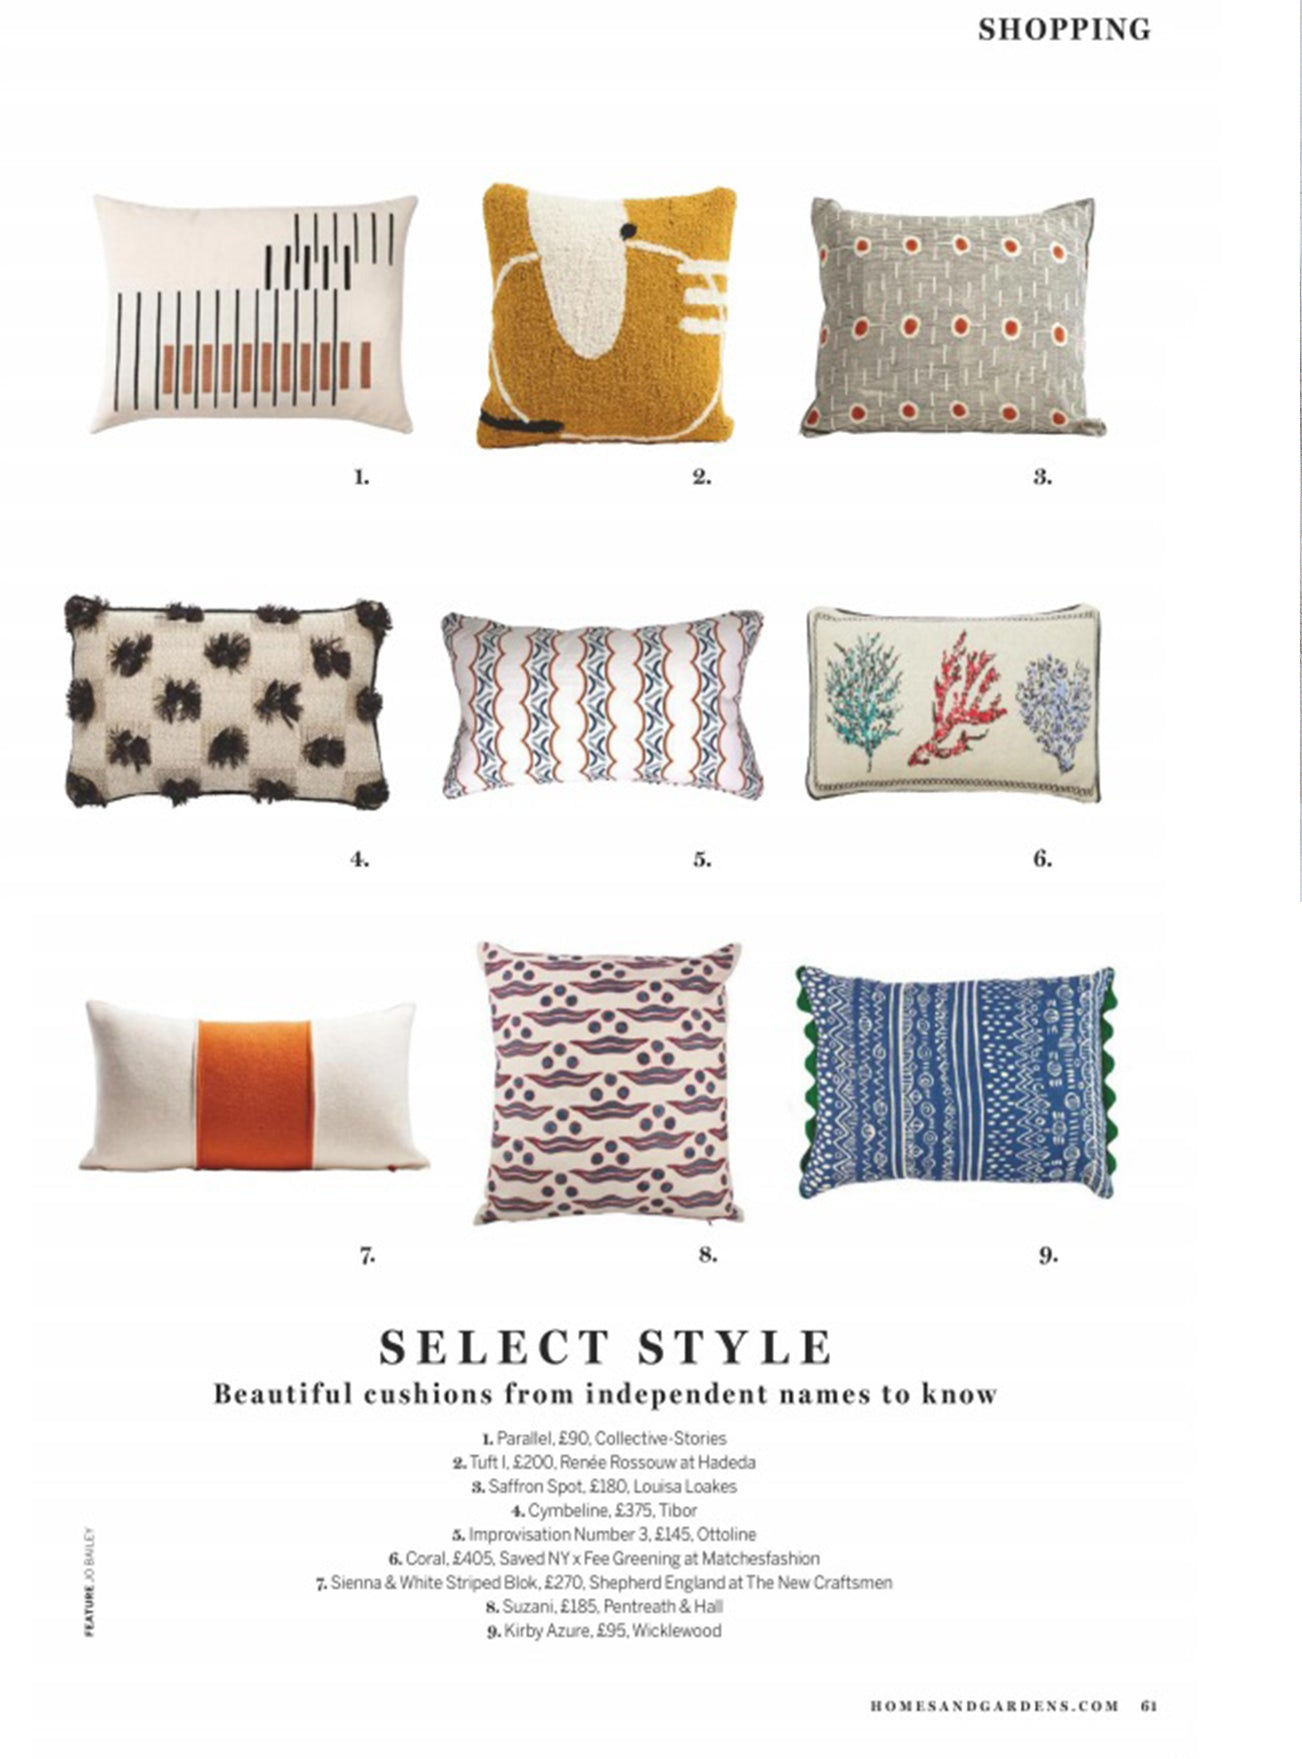 Wicklewood kirby cushion featured in homes and gardens october issue